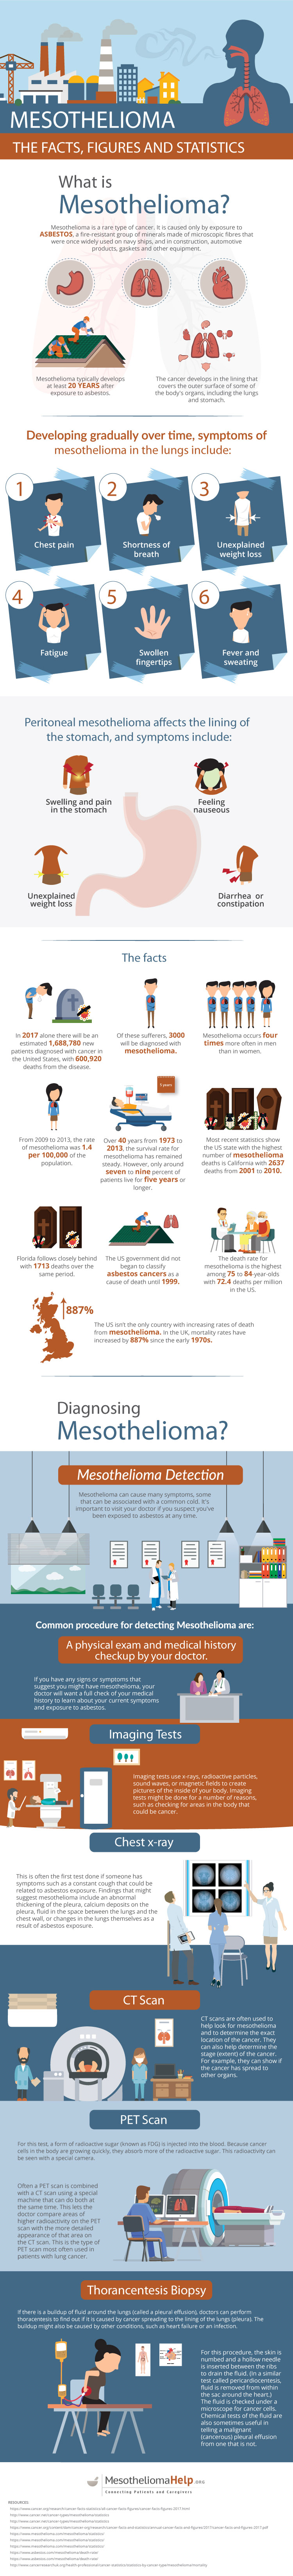 What is Mesothelioma? The Facts, Figures, and Statistics